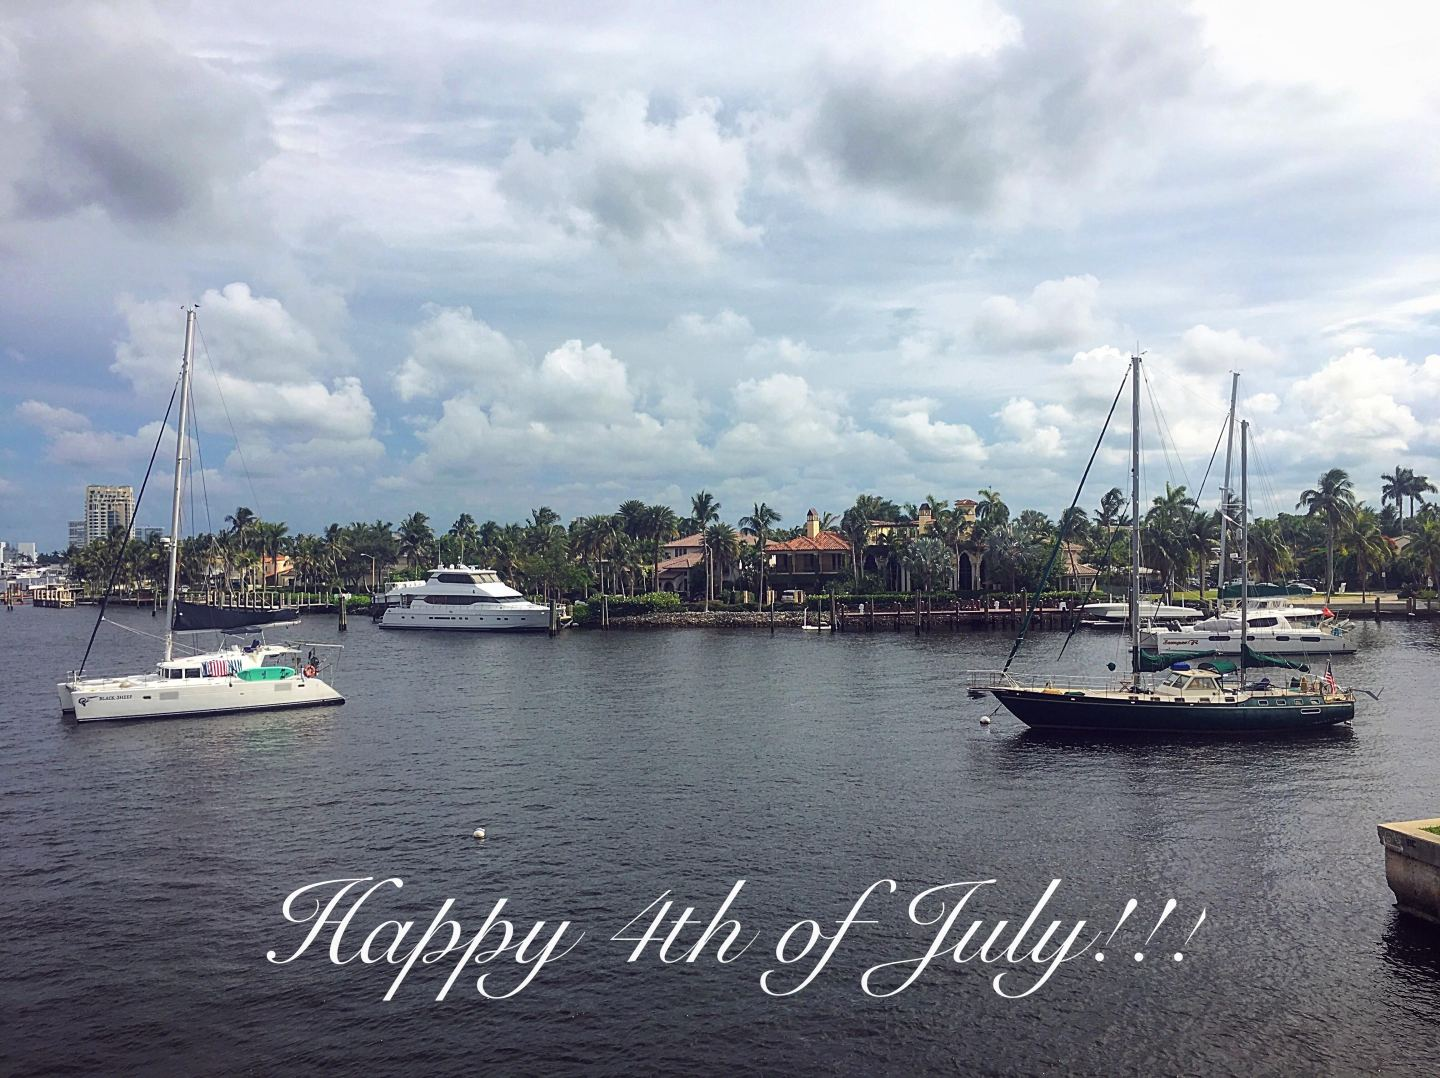 4th of July Heart of FTL Greetings